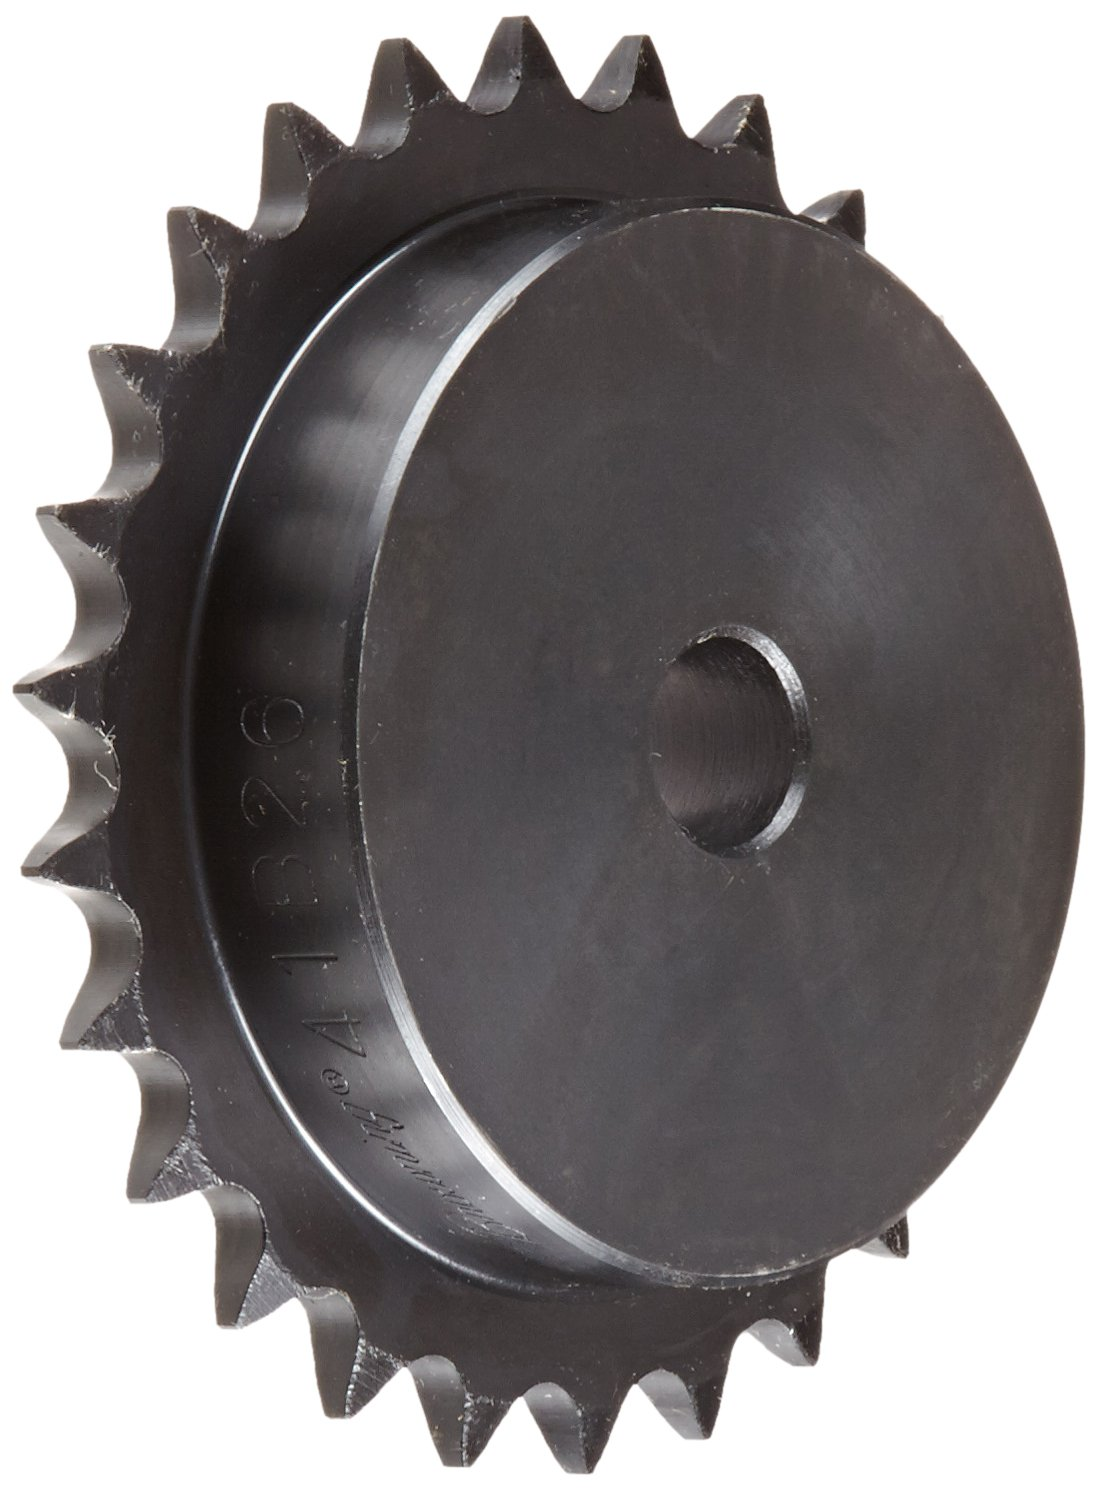 5//8 Stocked Bore Steel Single Strand 26 Teeth 5//8 Stocked Bore Regal Browning 41B26 Minimum Bore Roller Chain Sprocket